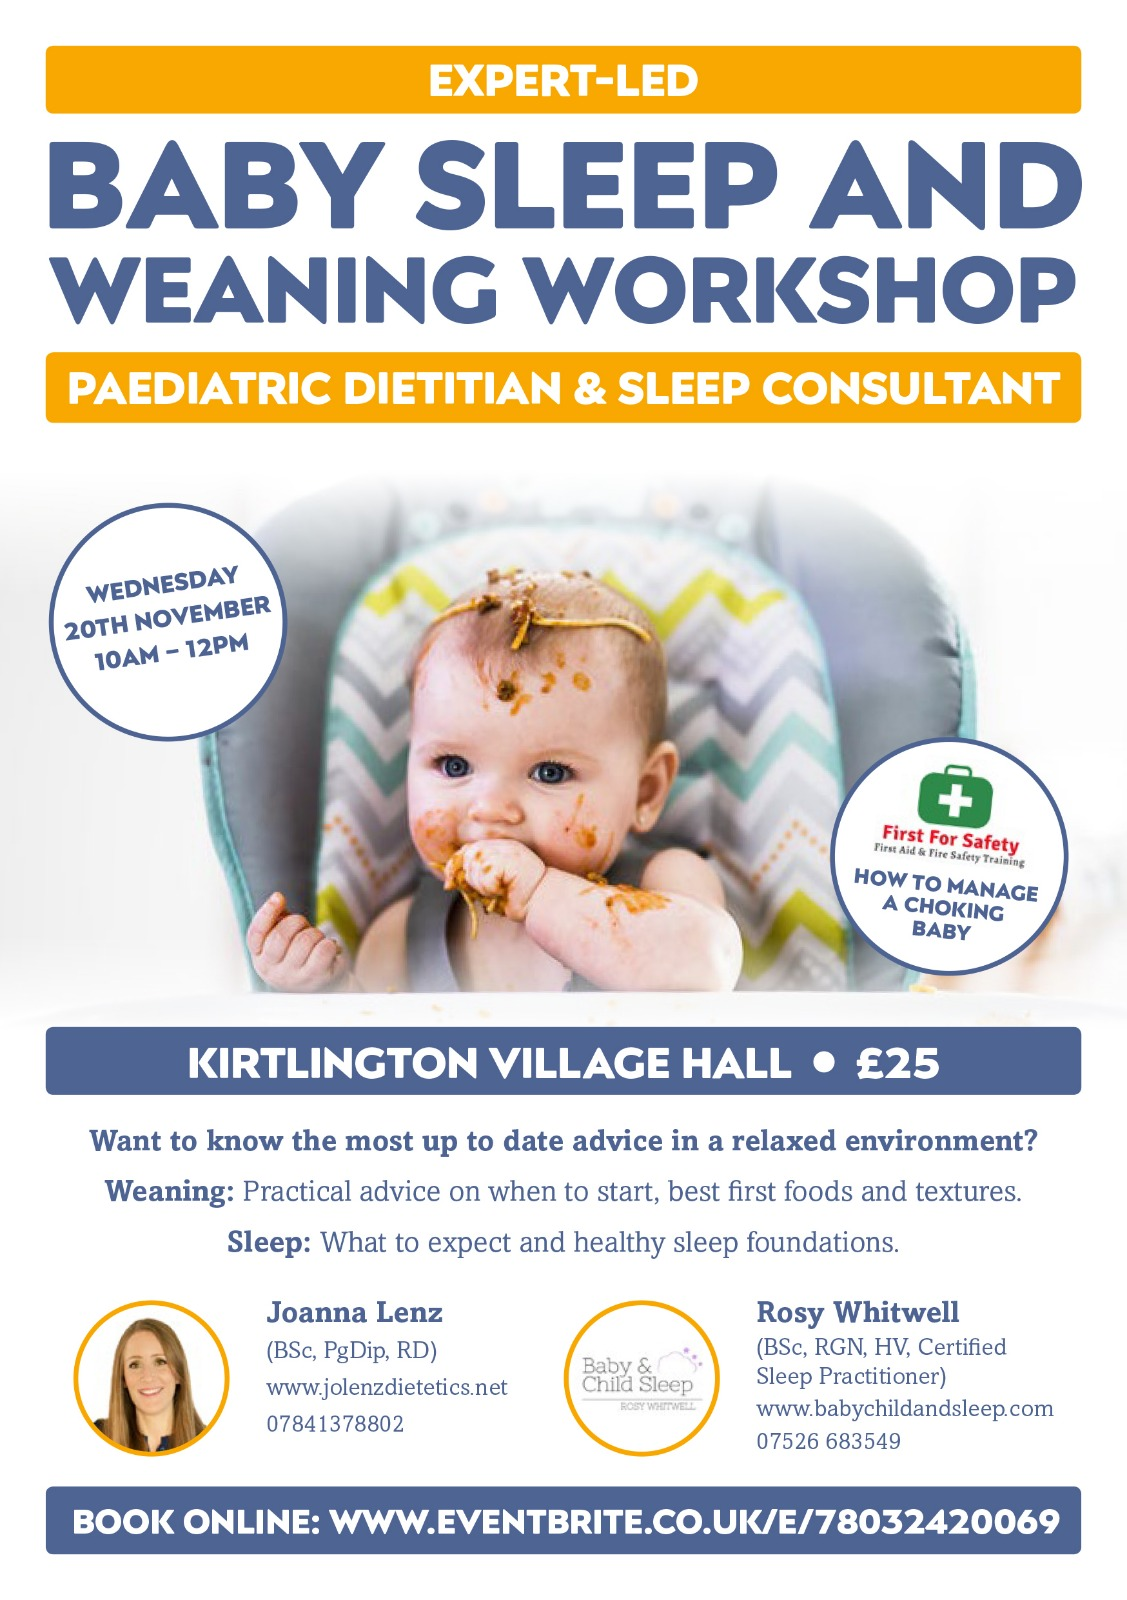 Baby Sleep and Weaning Workshop with Choking Advice